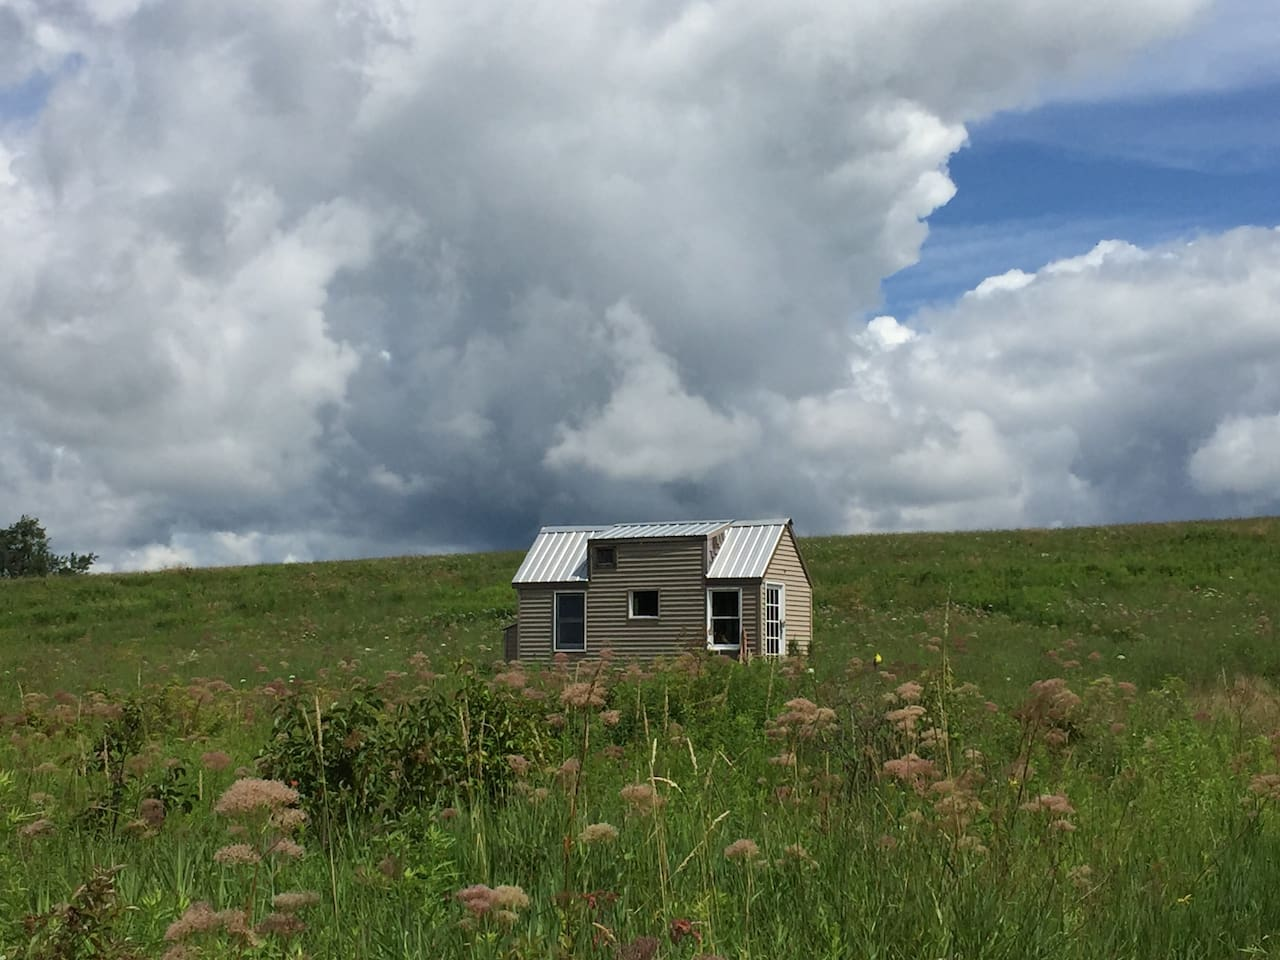 Tiny House on the hill.